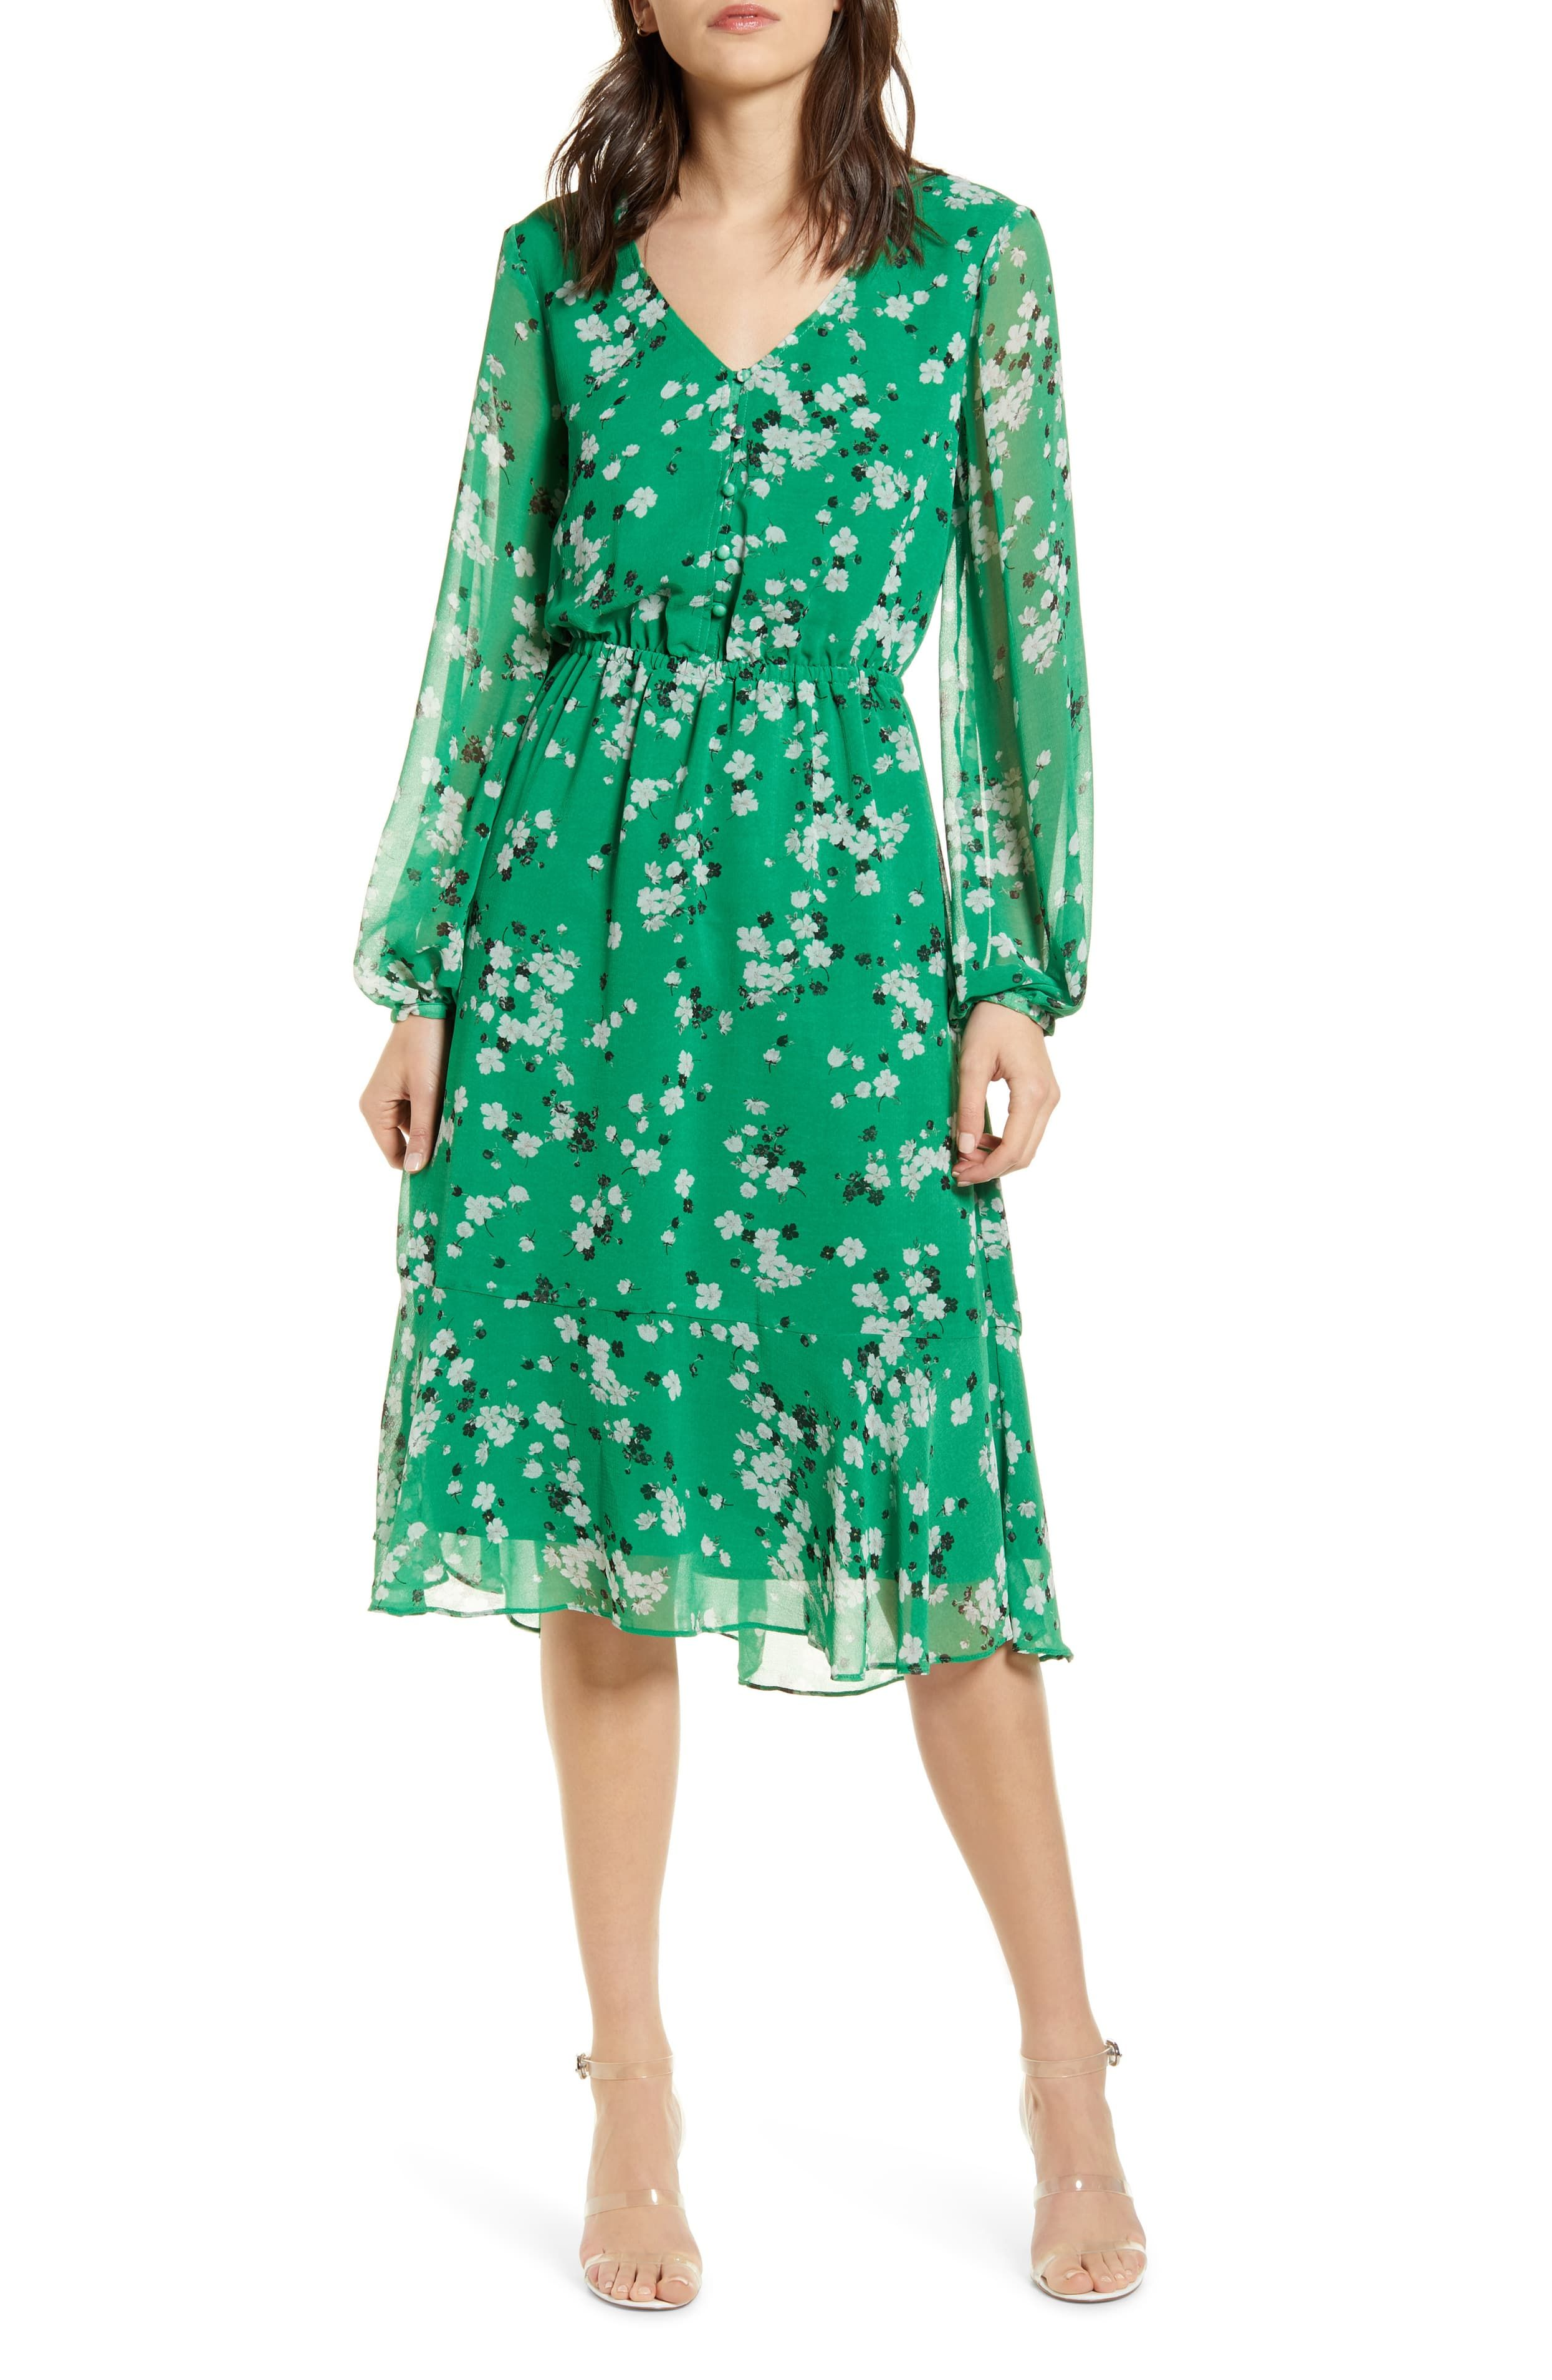 Kate Middleton S 2 335 Green Midi Dress Sold Out But We Found 8 Dupes For Way Less Long Sleeve Dress Online Long Sleeve Print Dress Long Sleeve Floral Print Dress [ 3819 x 2490 Pixel ]